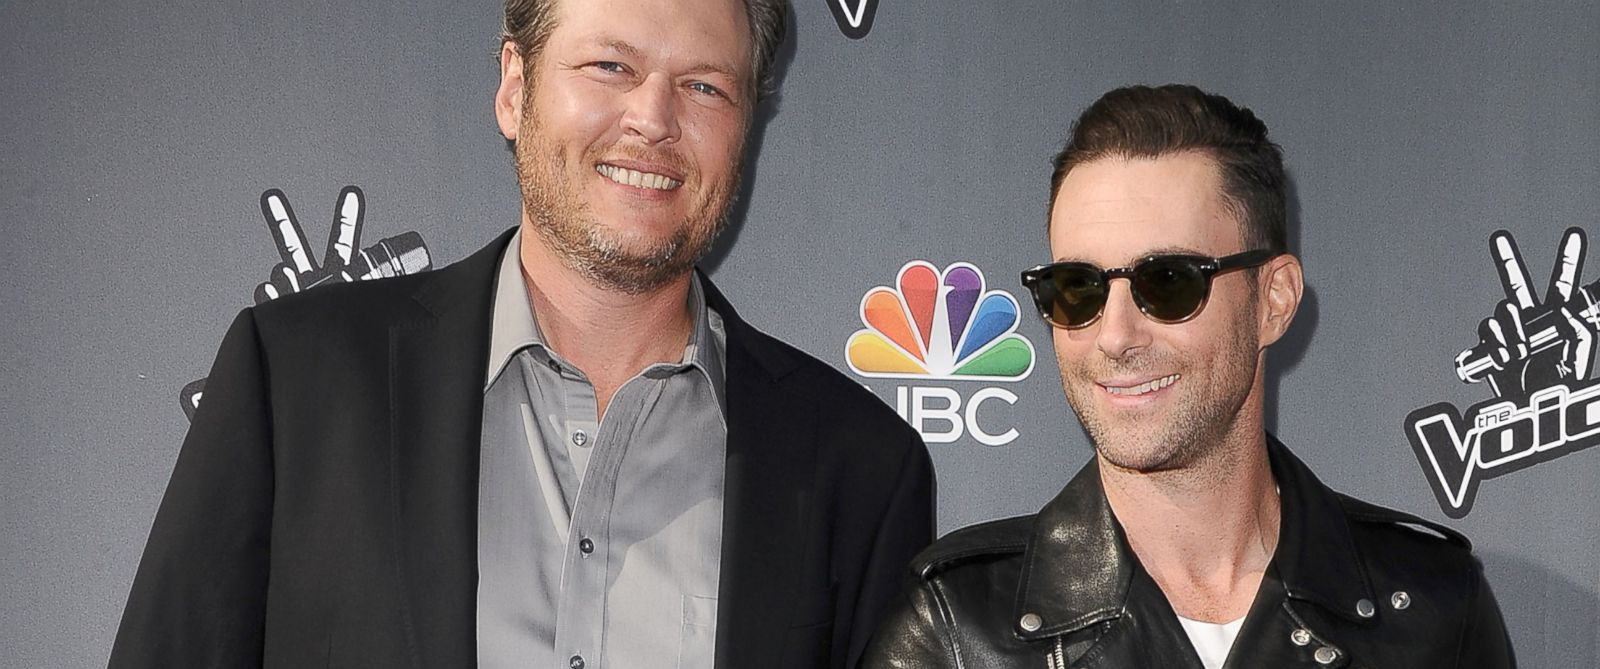 """PHOTO: Blake Shelton and Adam Levine attend NBCs """"The Voice"""" red carpet event at The Sayers Club, April 3, 2014 in Hollywood, Calif."""